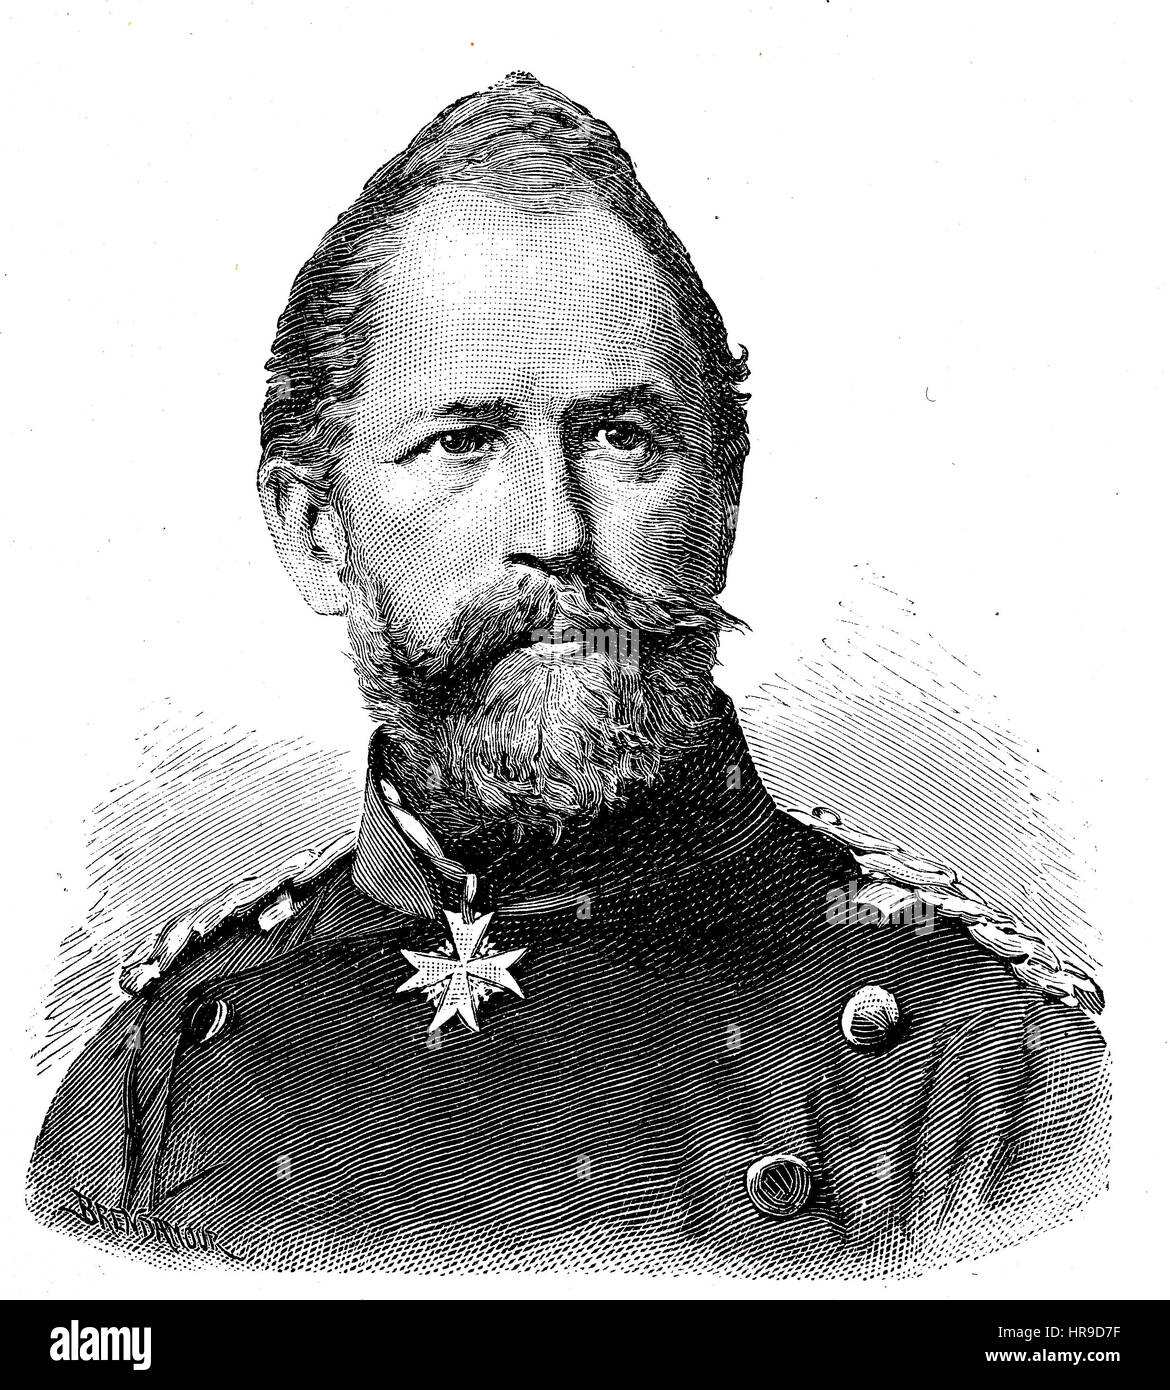 Wilhelm Ludwig Karl Kurt Friedrich von Tuempling, 1809 - 1884, Was a Prussian general of the cavalry, Situation - Stock Image